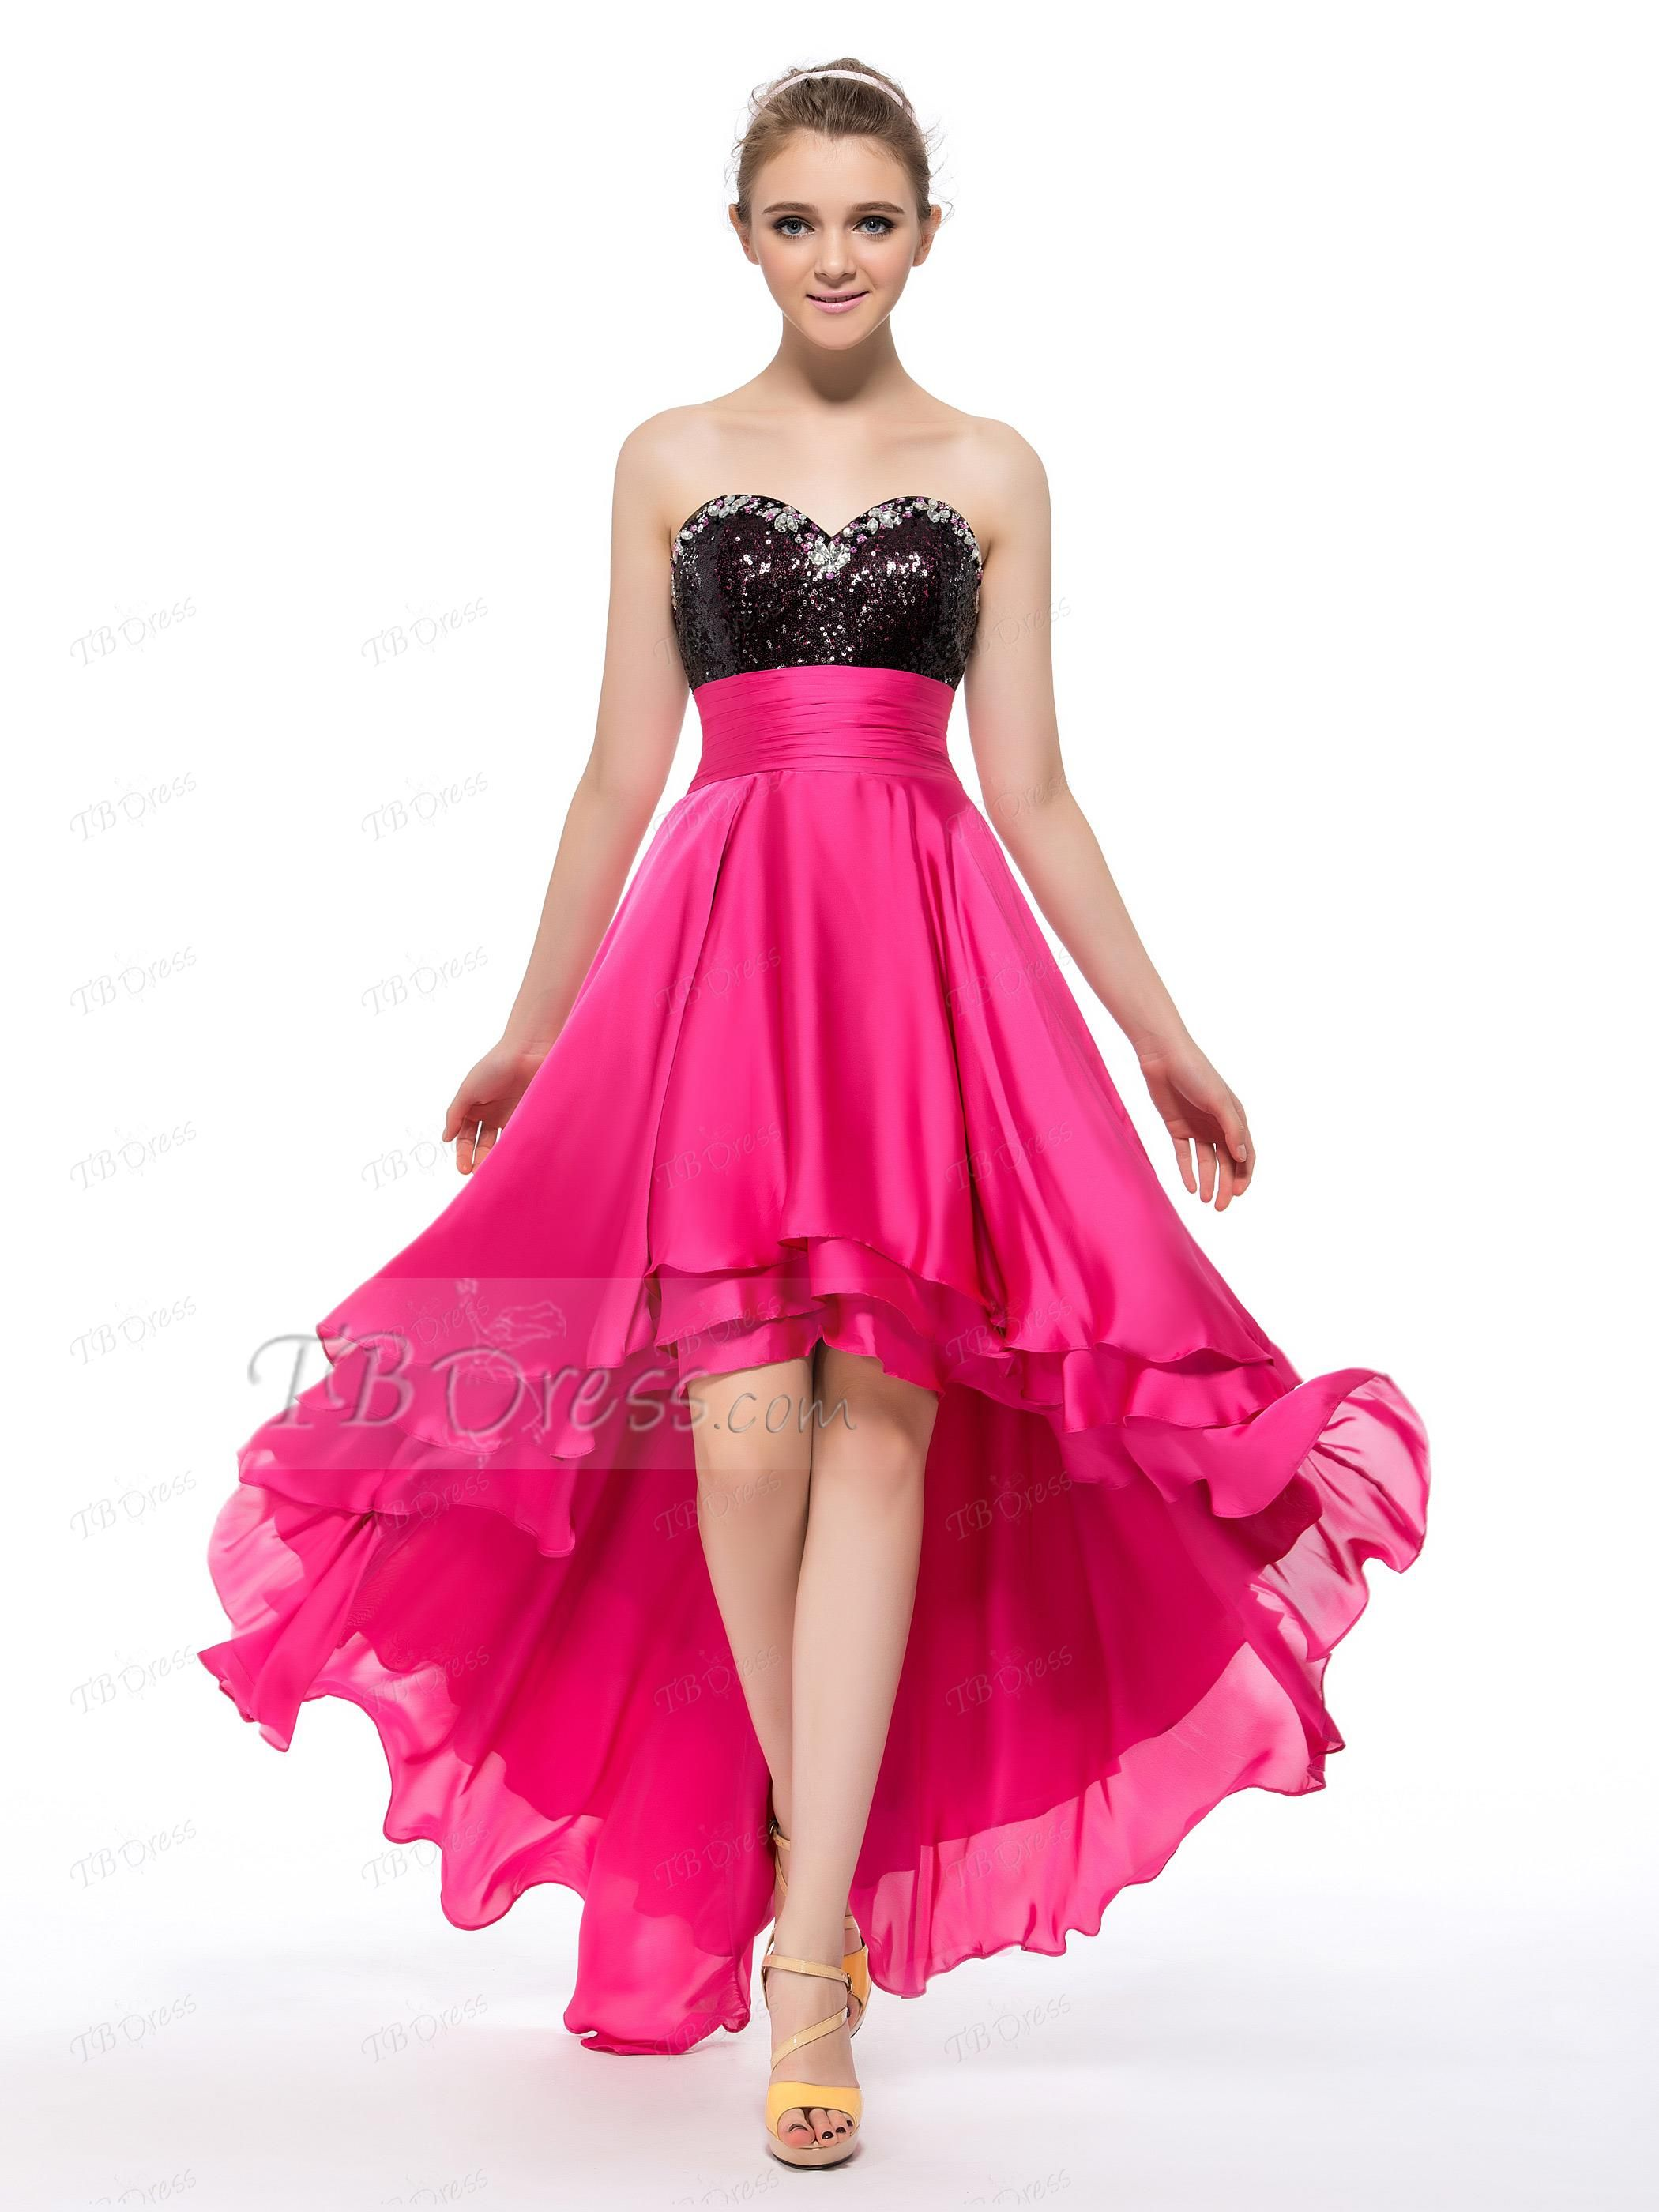 Sweetheart High-Low Sequins Homecoming Dress | Vestiditos y Fiestas